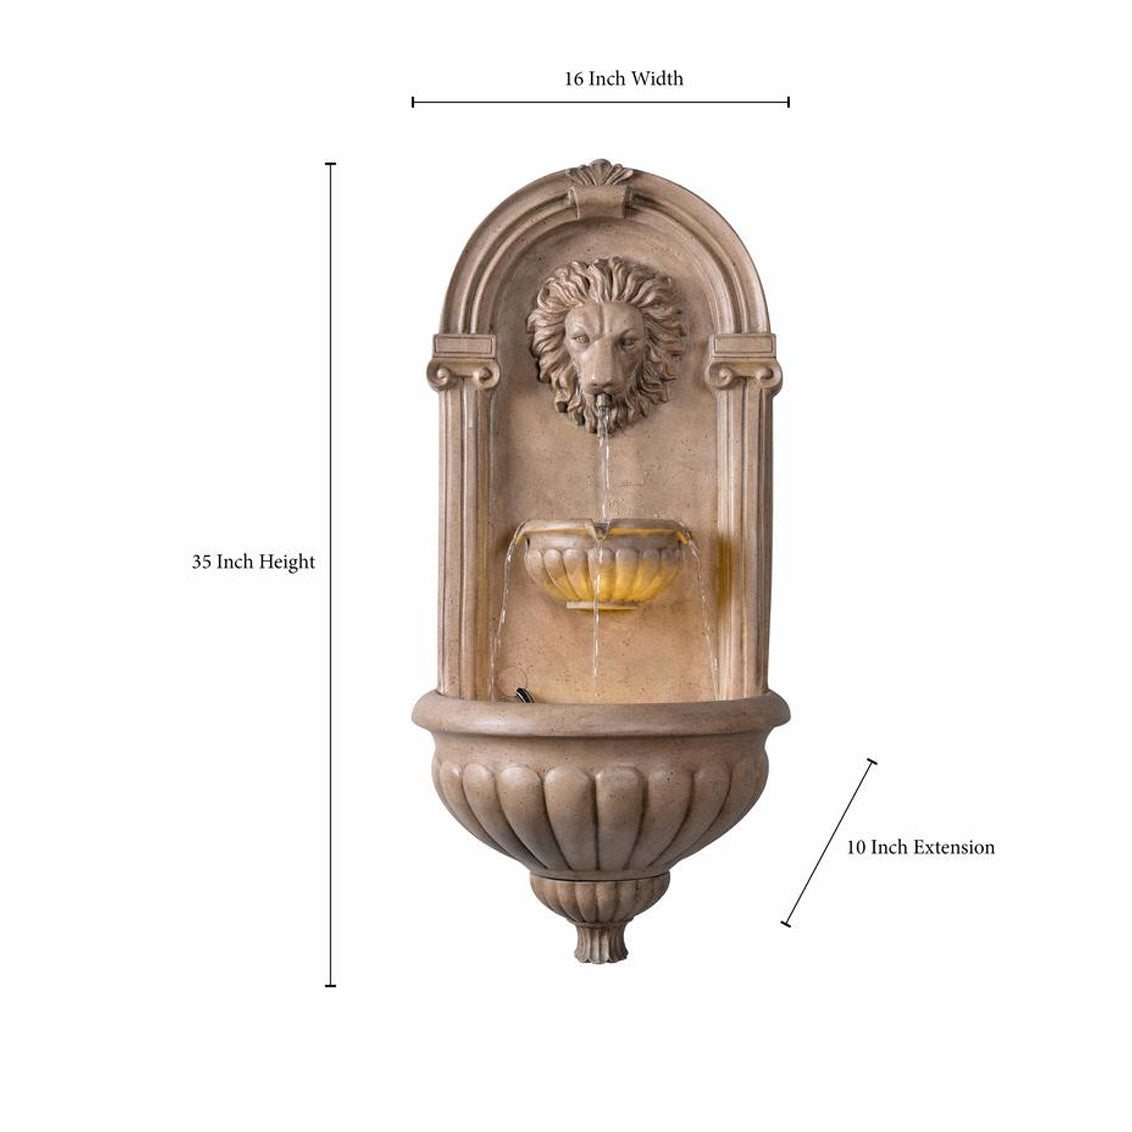 Royal Wall Fountain - Soothing Walls